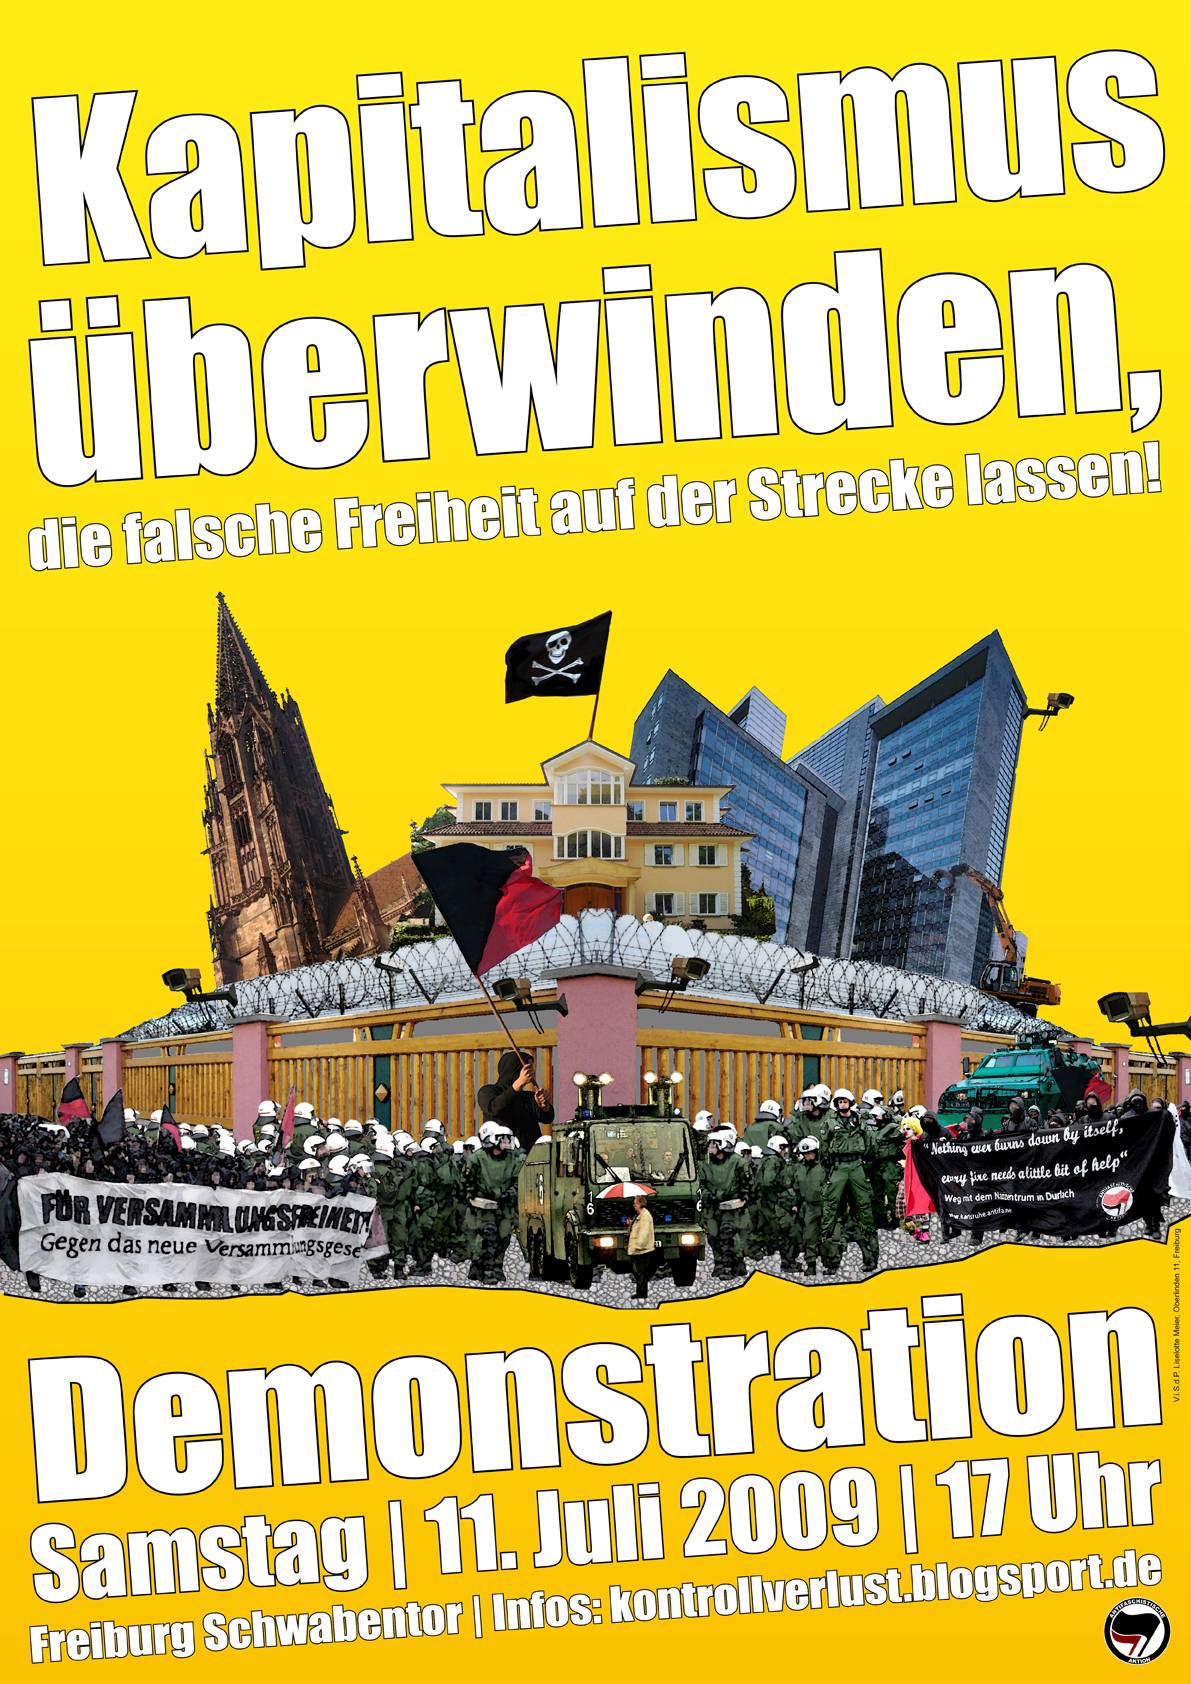 Antikapitalistische Demo am 11. Juli in Freiburg